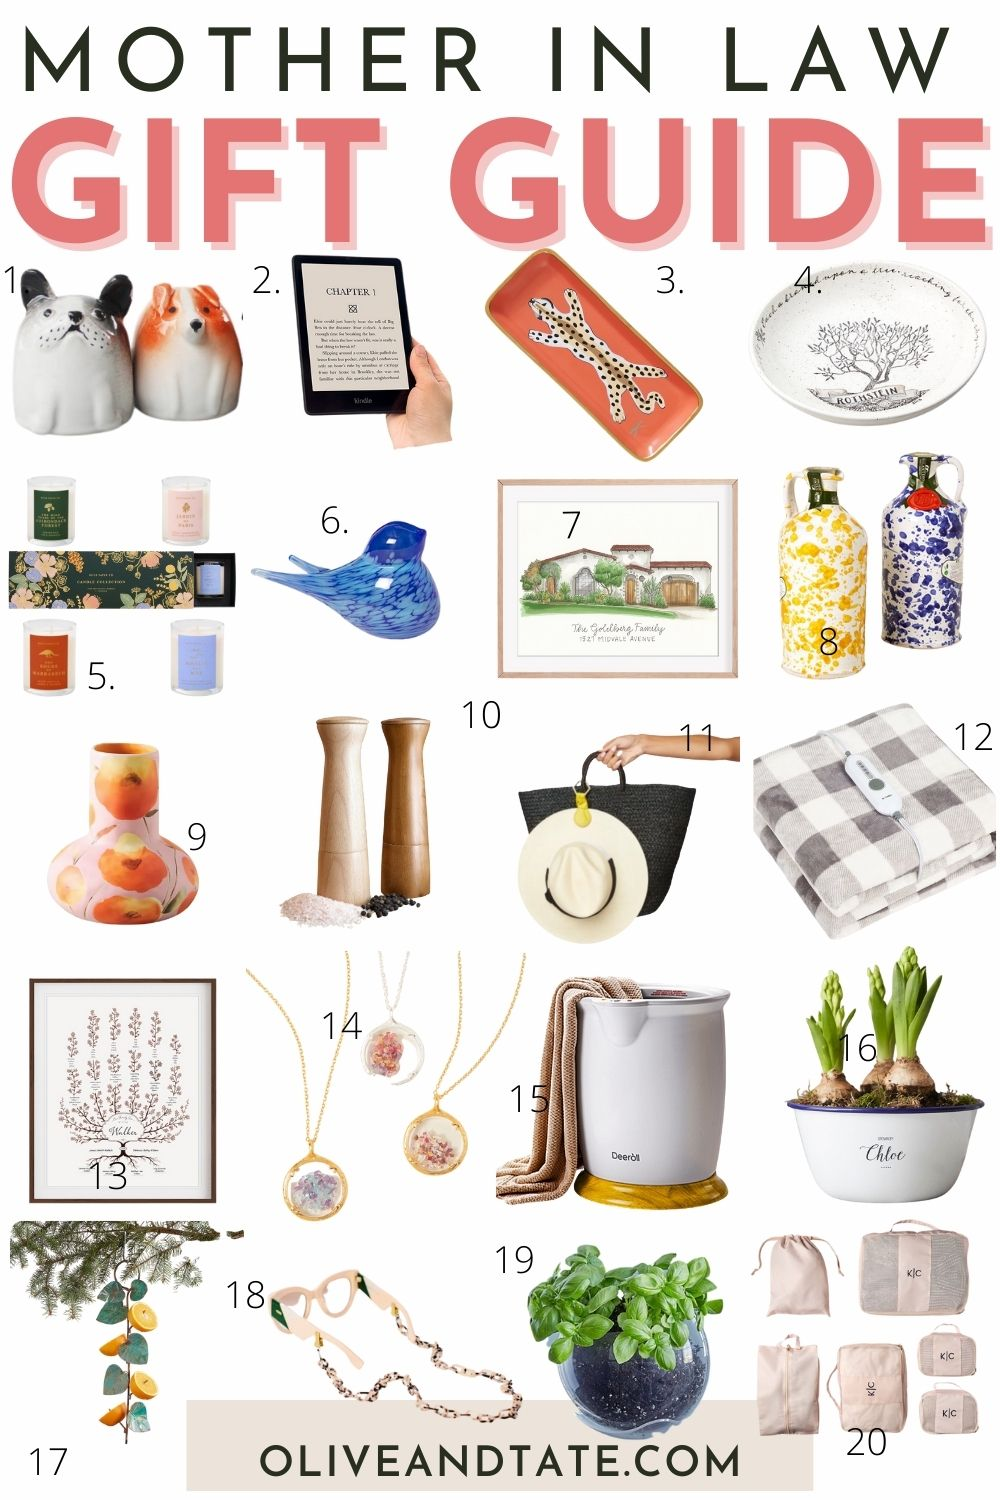 The Best Gifts for Mother In Law